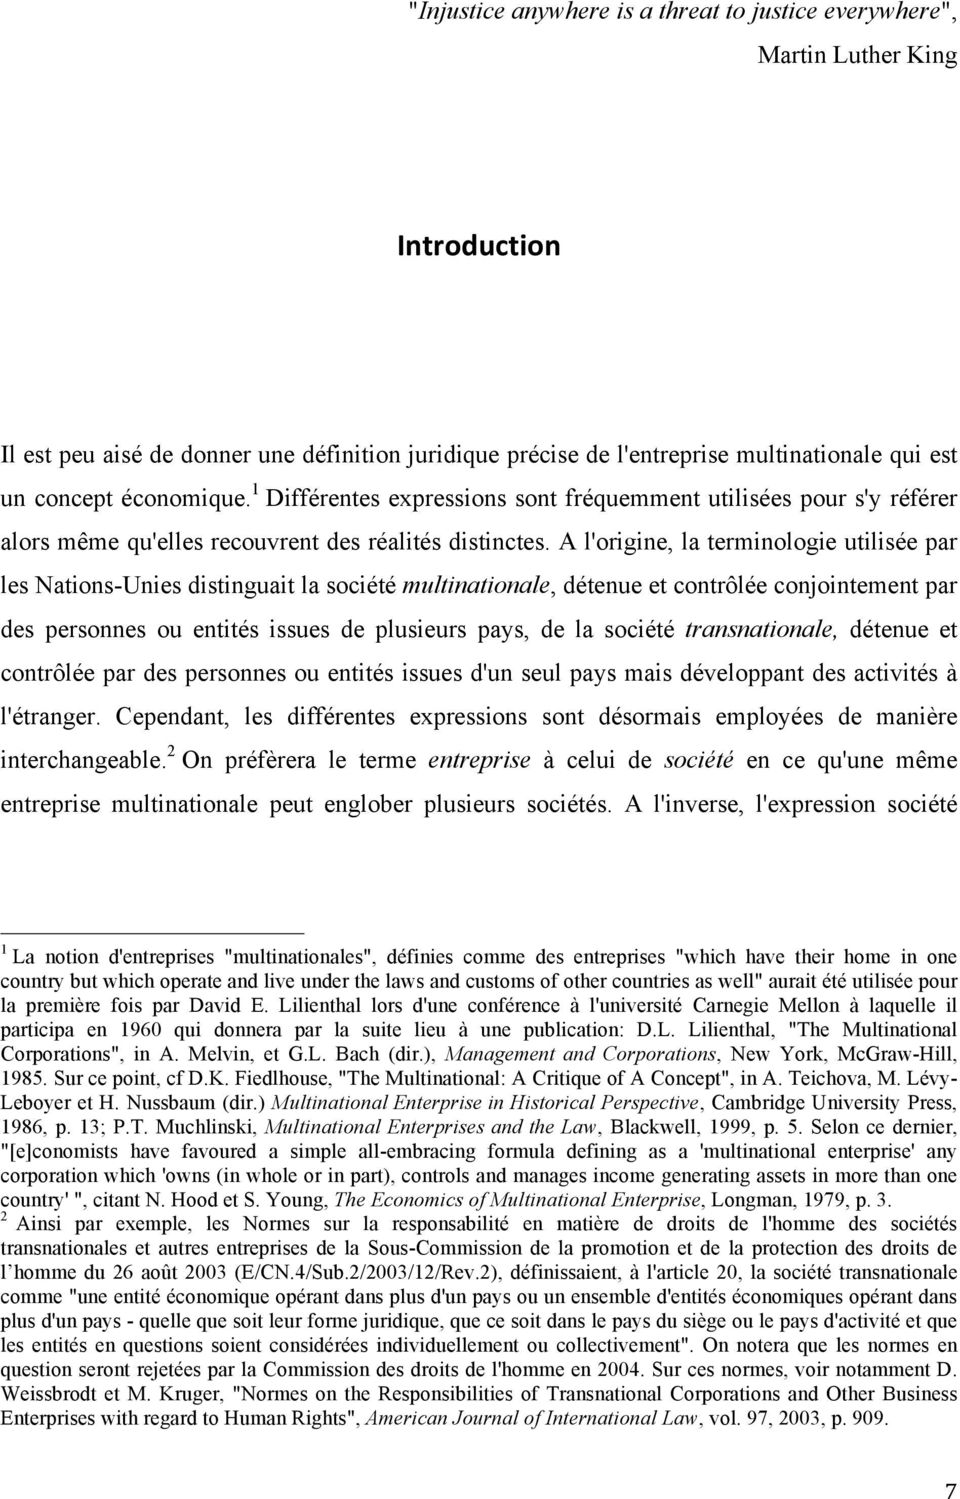 A l'origine, la terminologie utilisée par les Nations-Unies distinguait la société multinationale, détenue et contrôlée conjointement par des personnes ou entités issues de plusieurs pays, de la